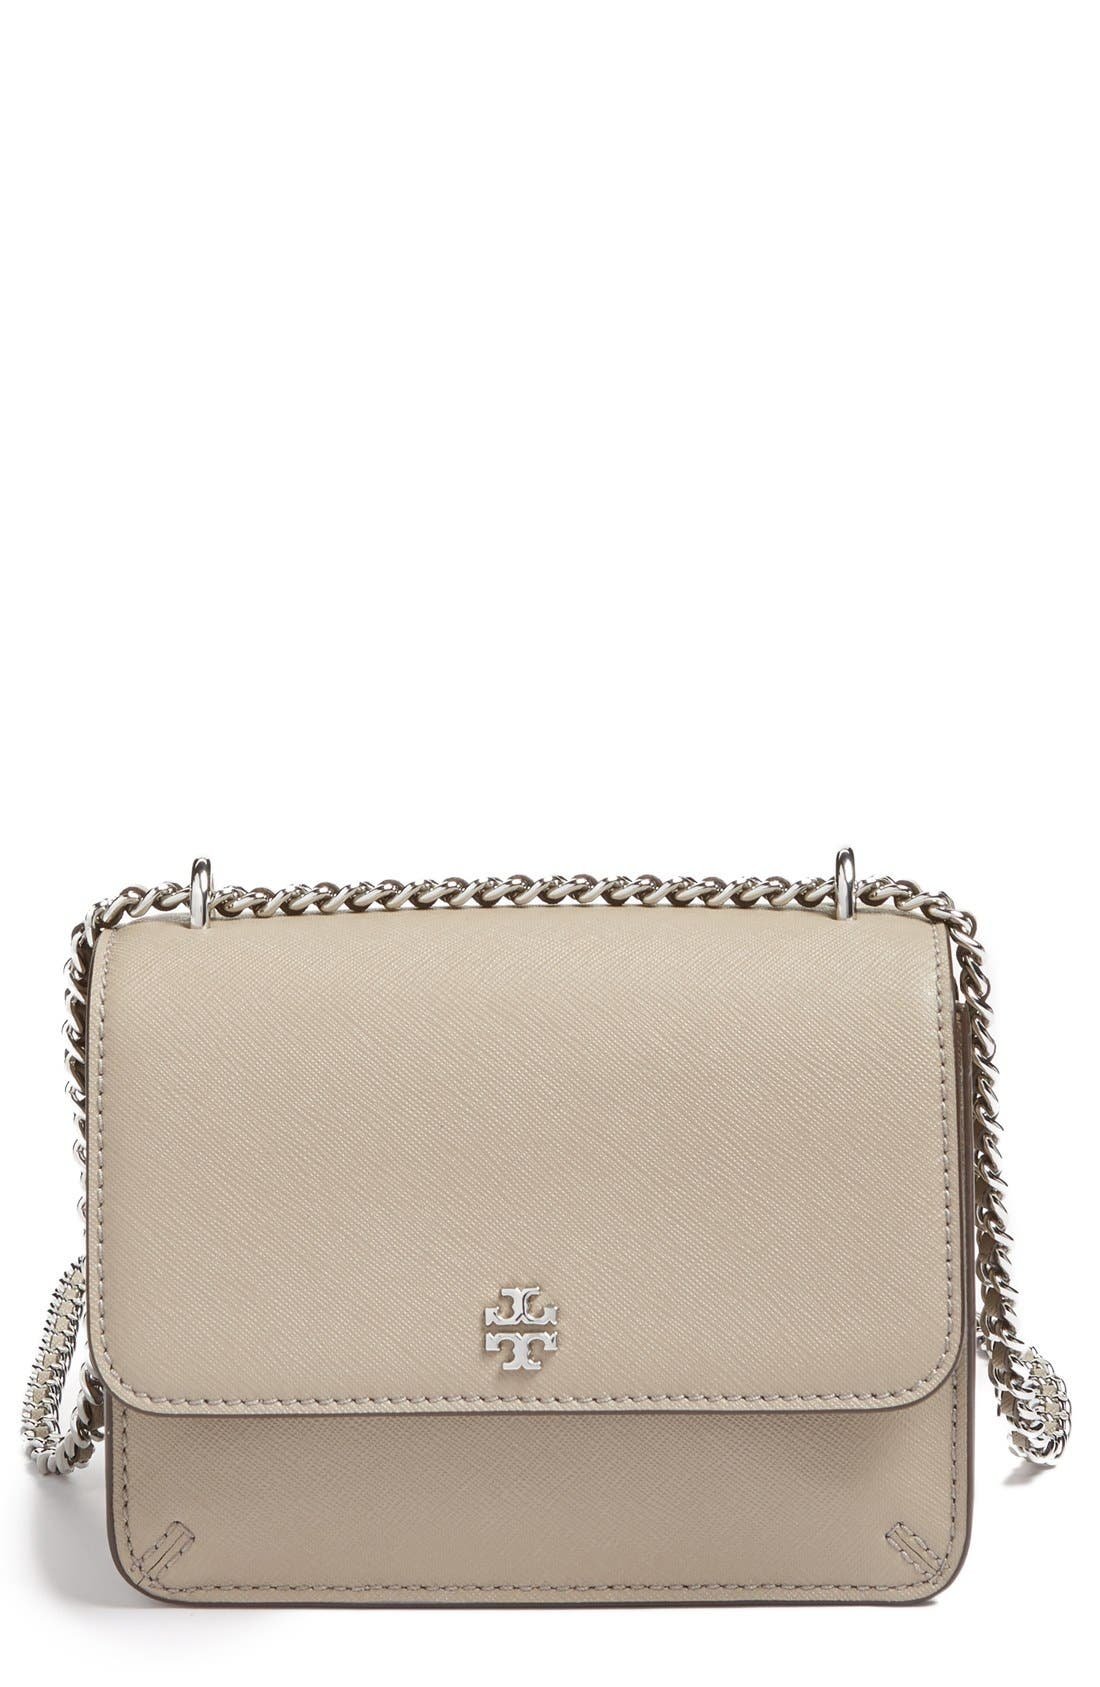 Alternate Image 1 Selected - Tory Burch Mini Robinson Convertible Leather Shoulder Bag